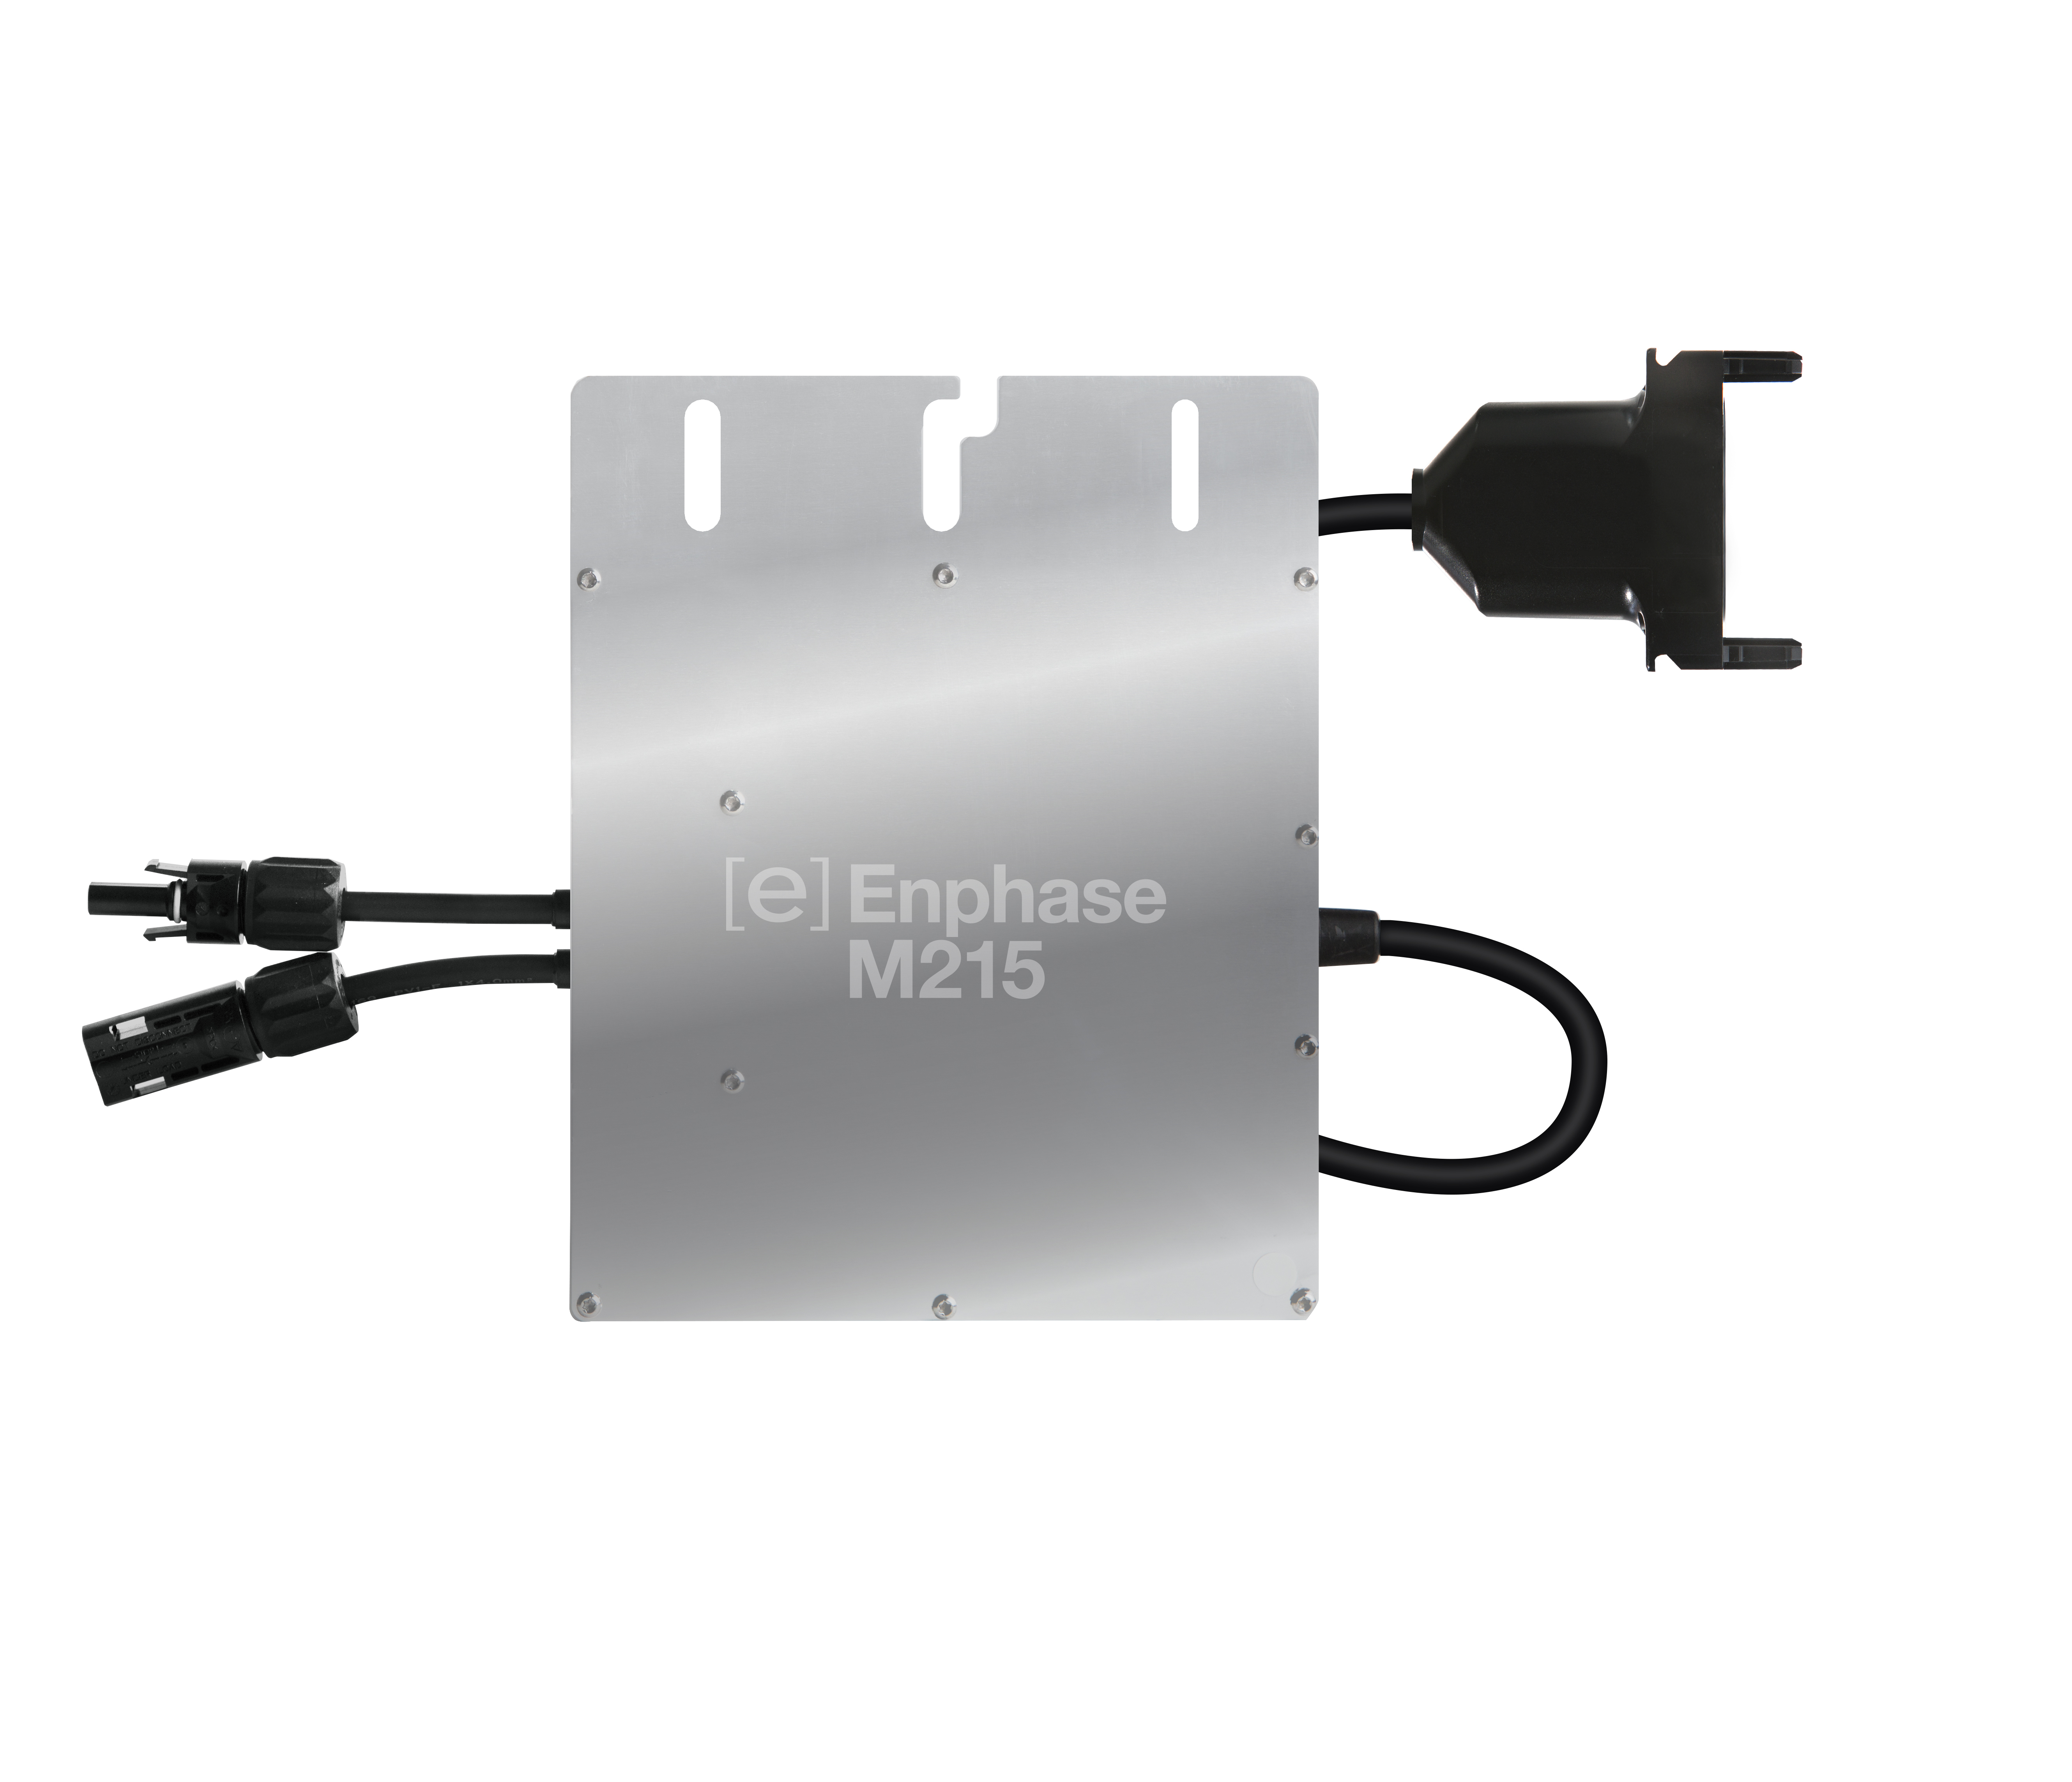 The Enphase System expands with new products, including the new M215 Microinverter with the labor and material savings feature Integrated Ground. (Photo: Business Wire)